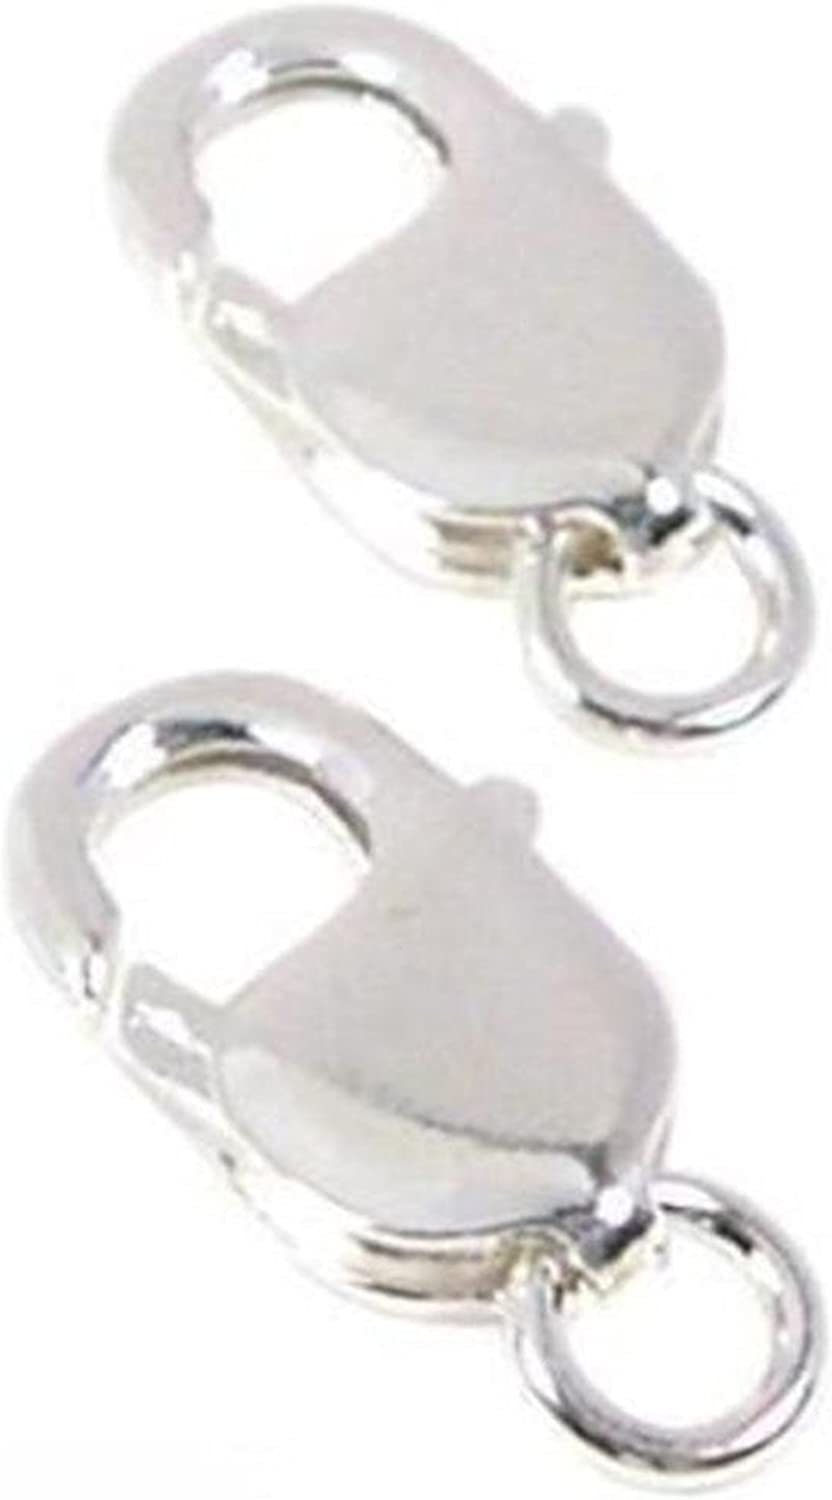 10pcs Stainless Steel Lobster Claw Clasp 12mm Necklace Closure Connector Silver